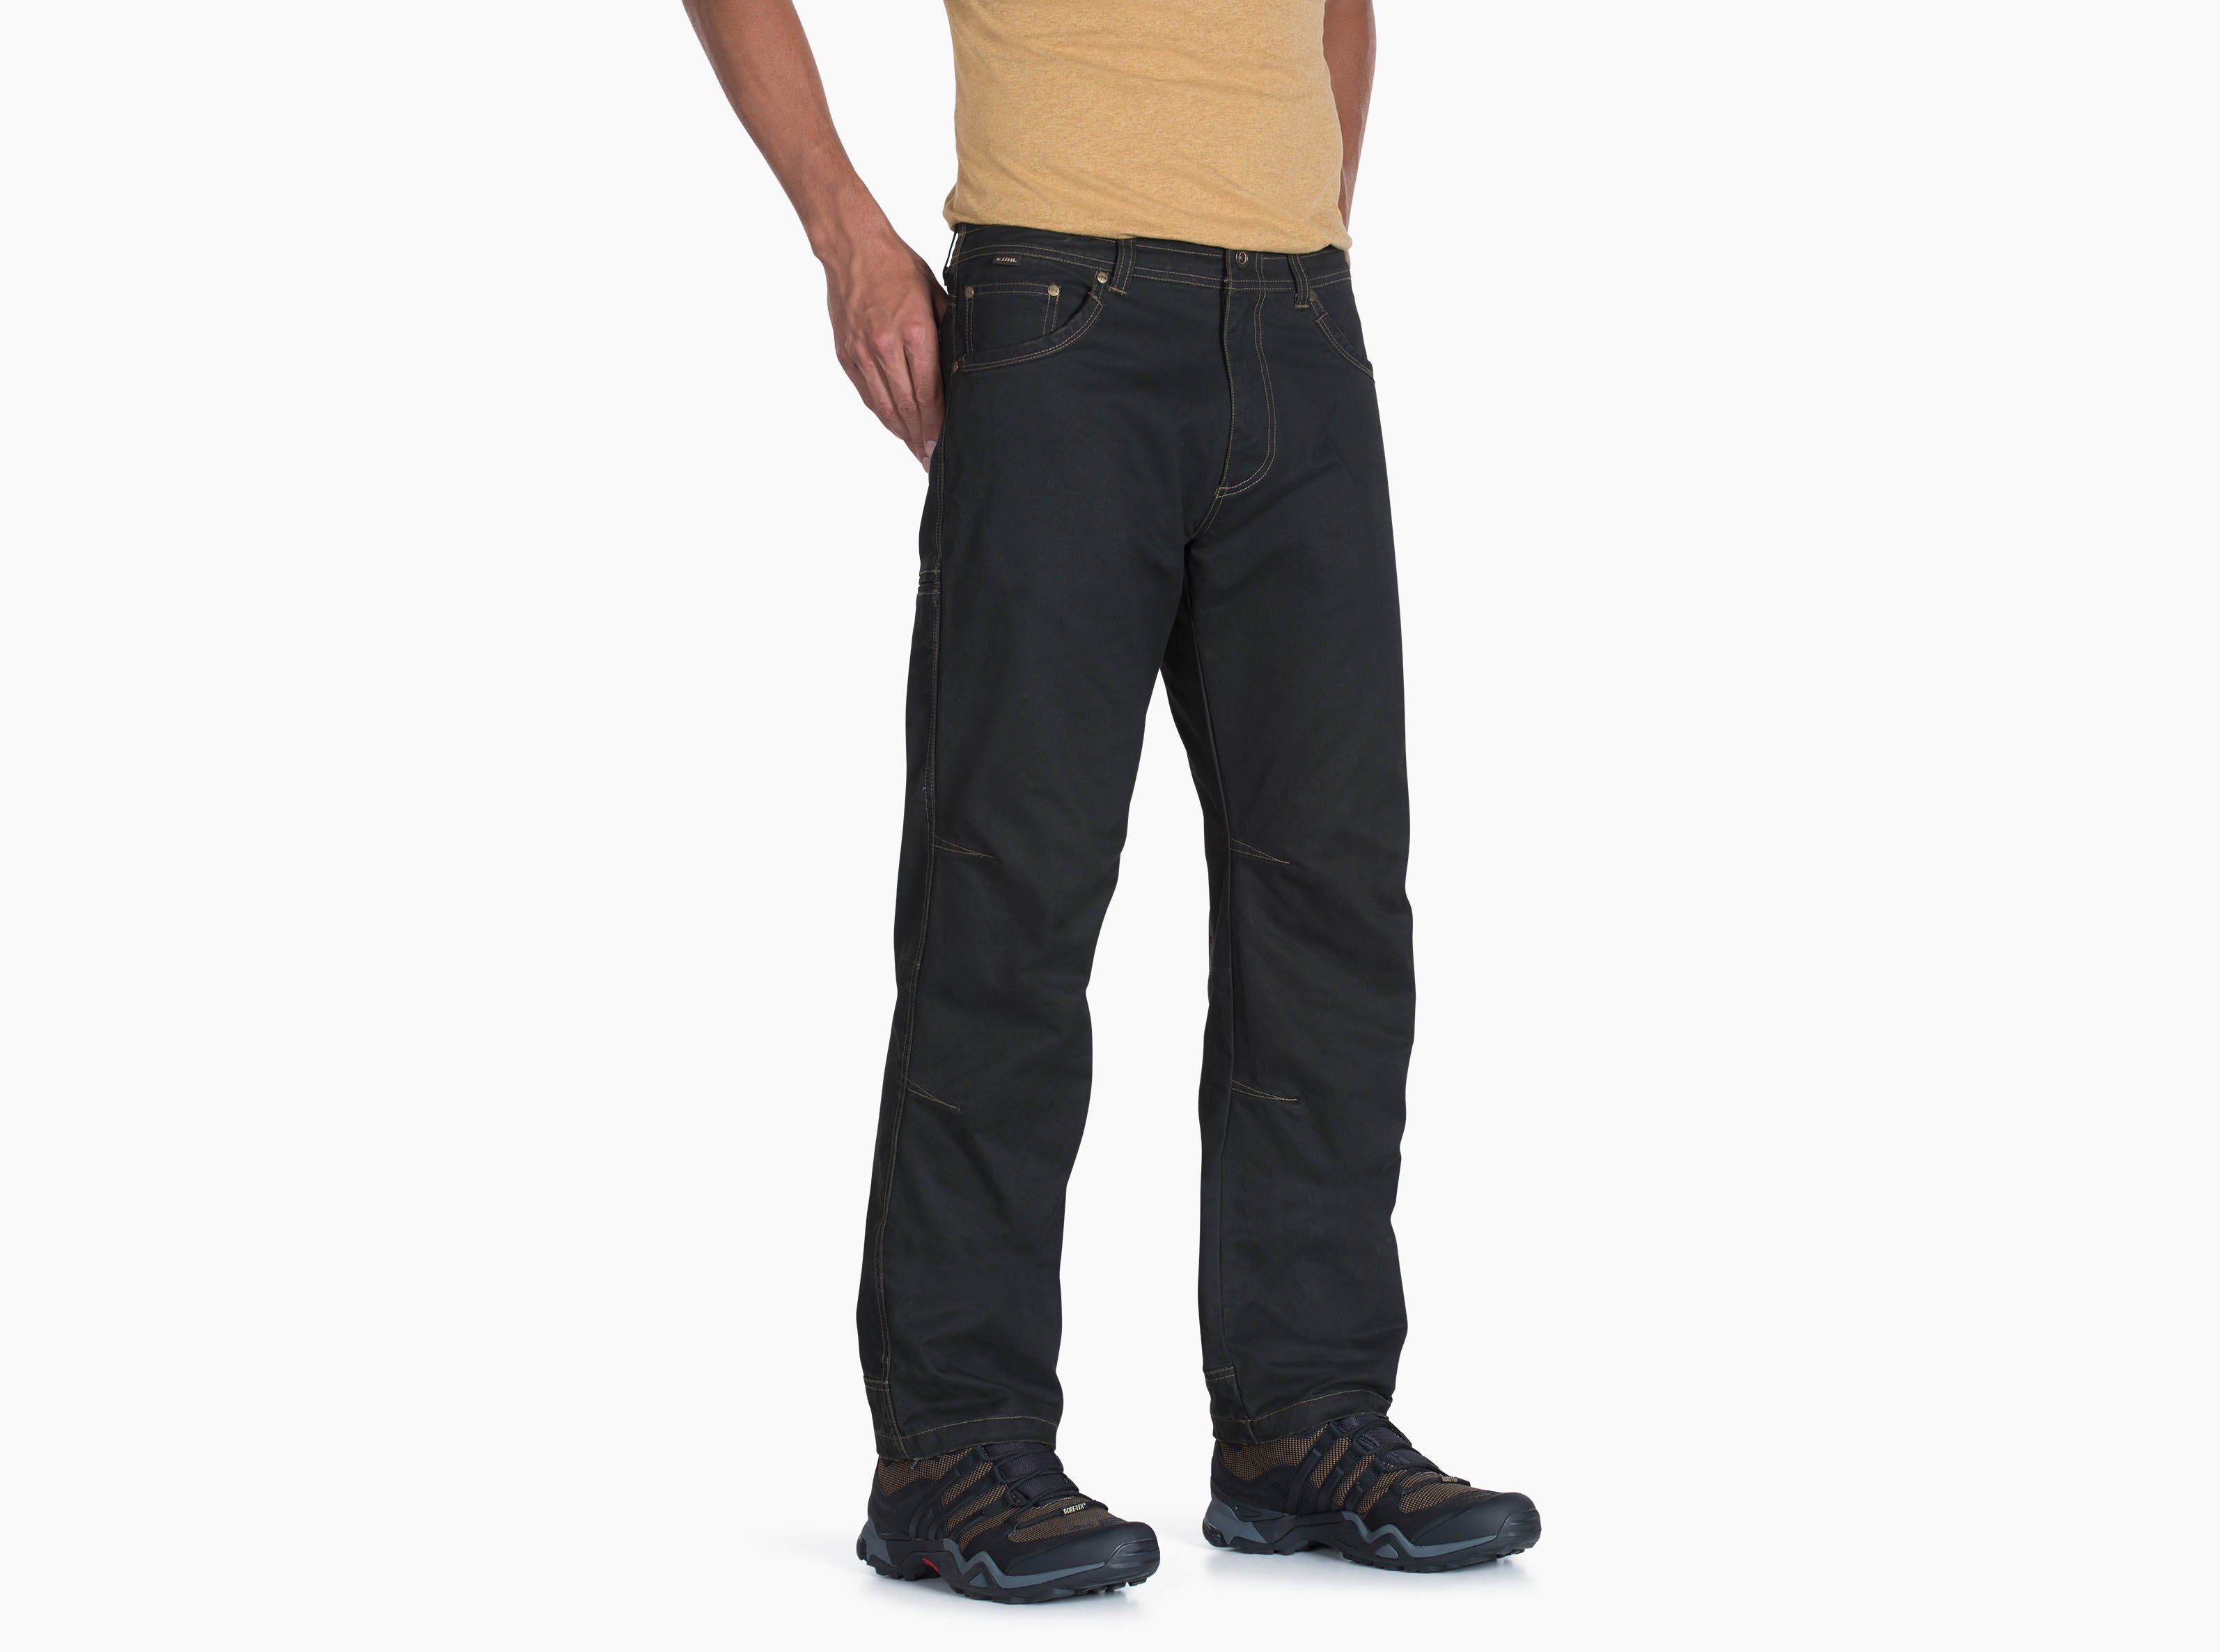 'Kuhl' Men's Hot Rydr Lined Pants - Espresso